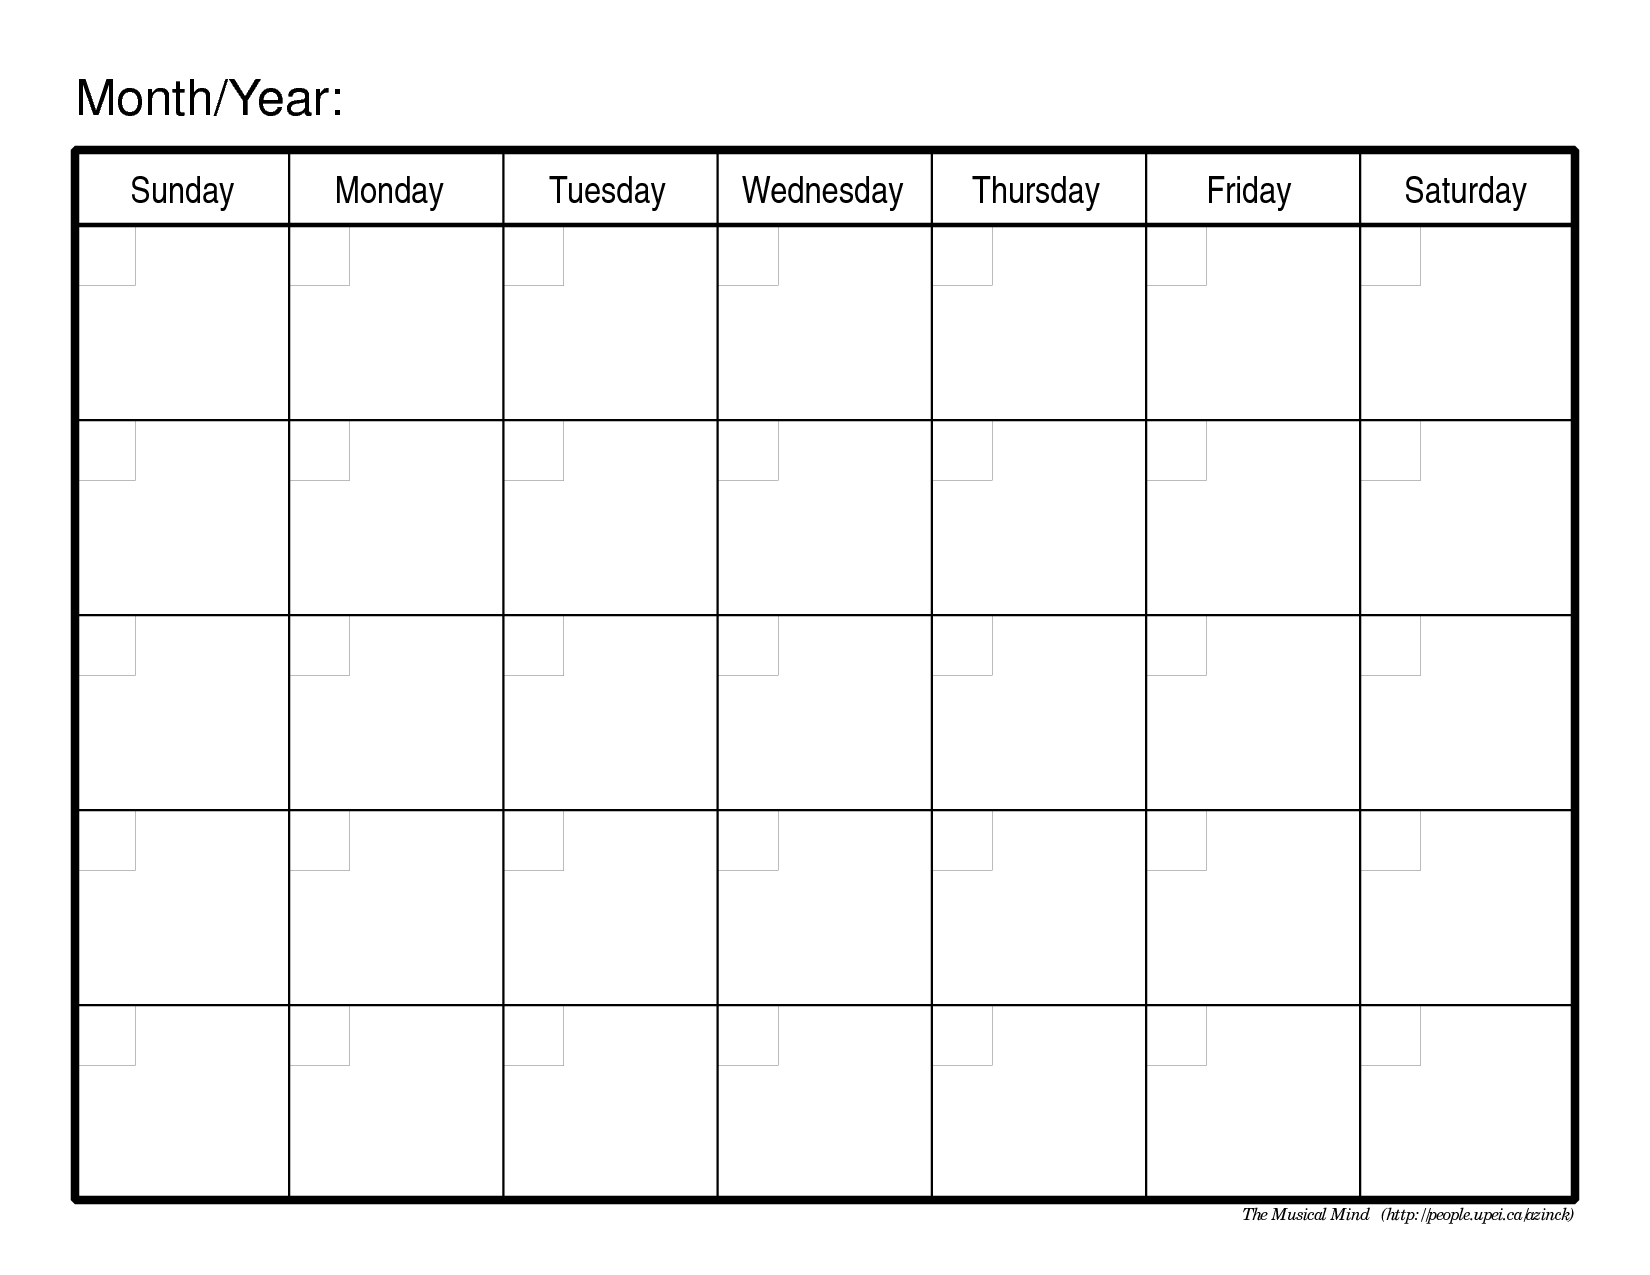 Calendar Templates Printable Free Fieldstation.co | Self Discovery throughout Blank Printable Mini Calendar